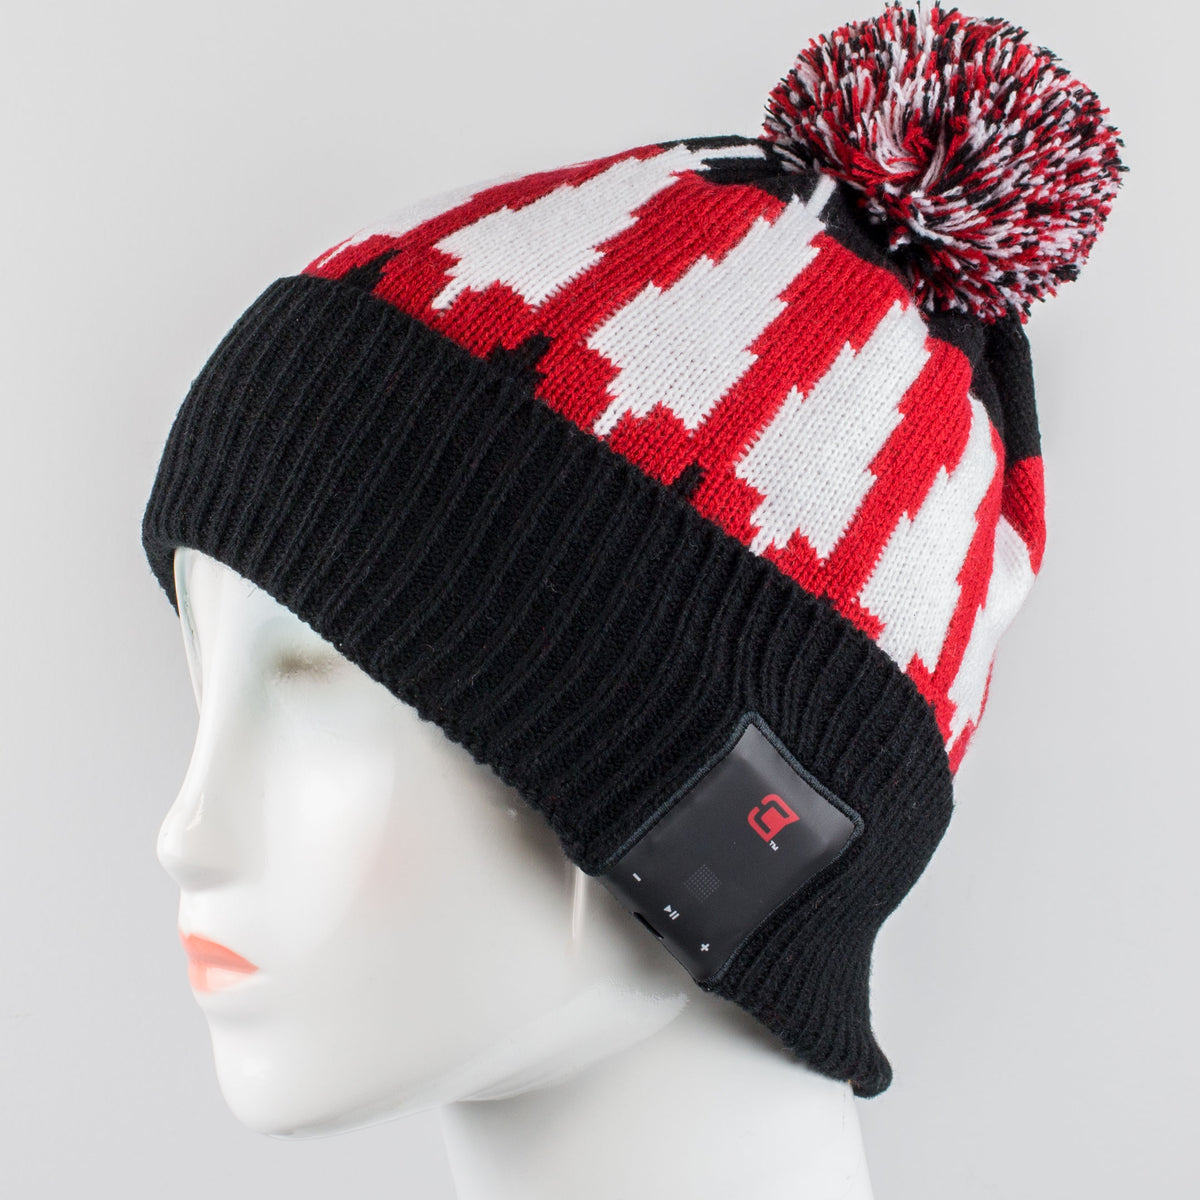 Blu-Toque - Bluetooth Beanie - Magma